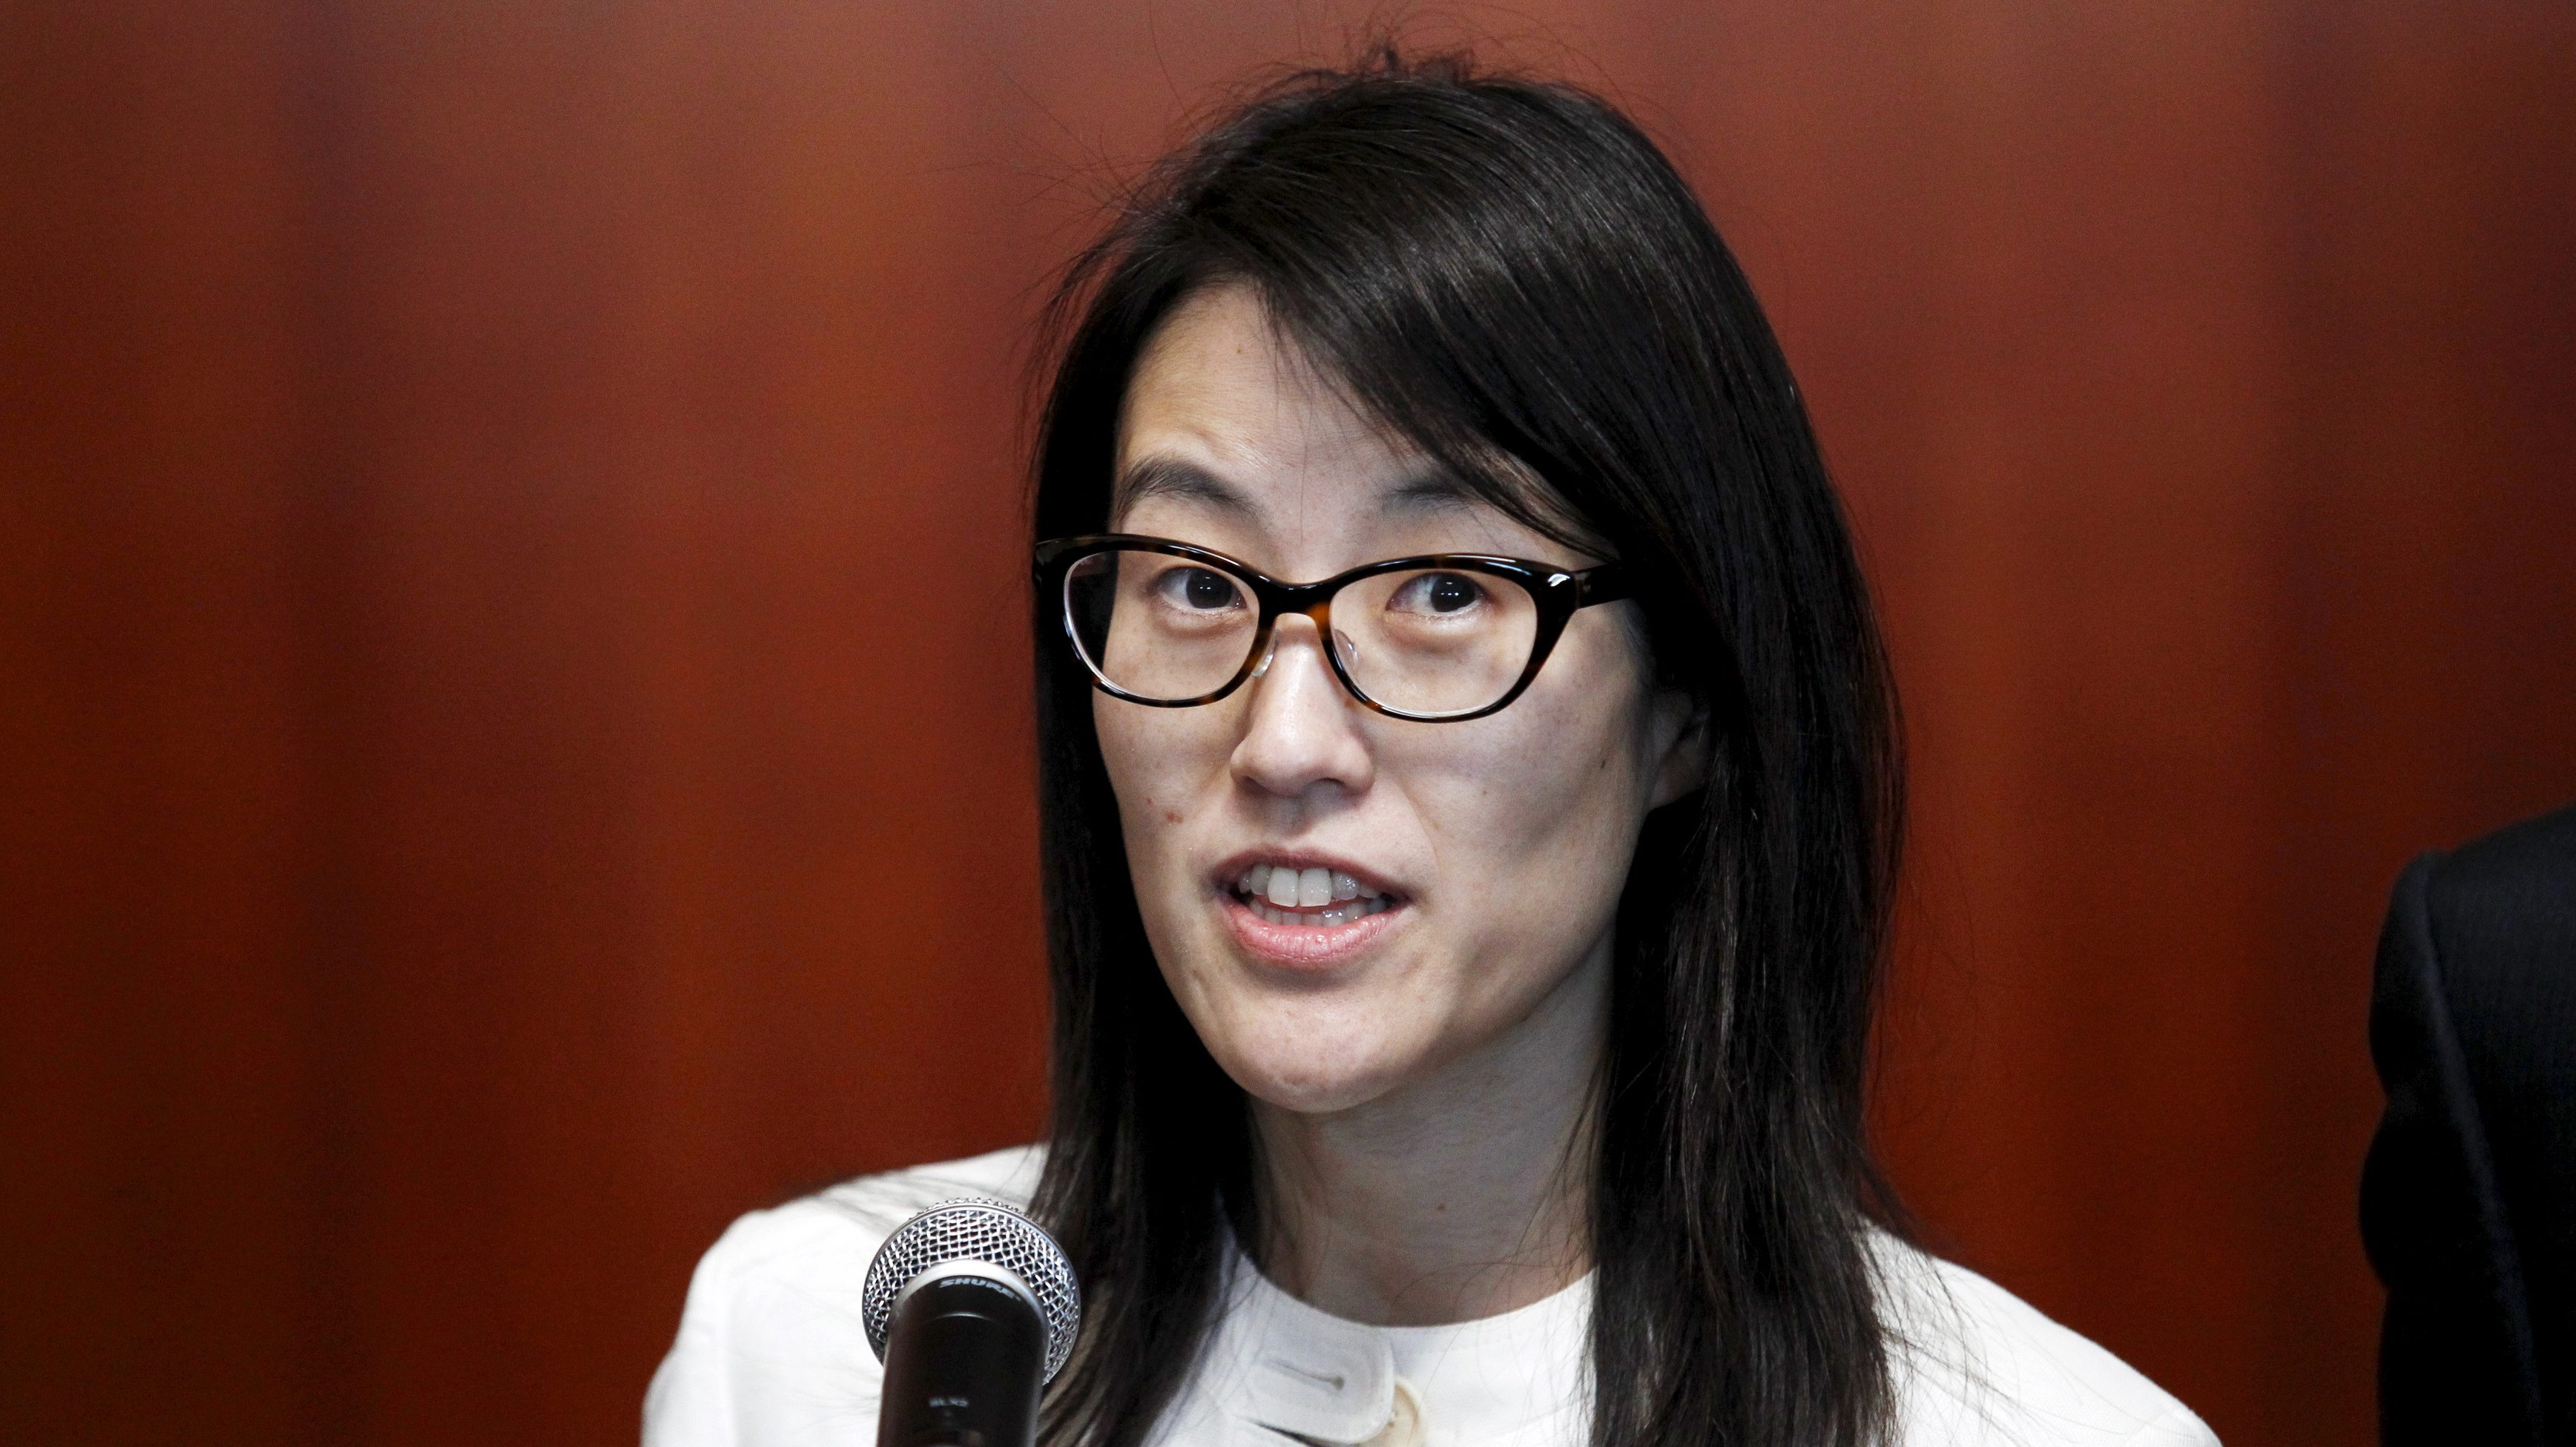 Ellen Pao speaks to the media after losing her high profile gender discrimination lawsuit against venture capital firm Kleiner, Perkins, Caufield and Byers in San Francisco, California March 27, 2015.